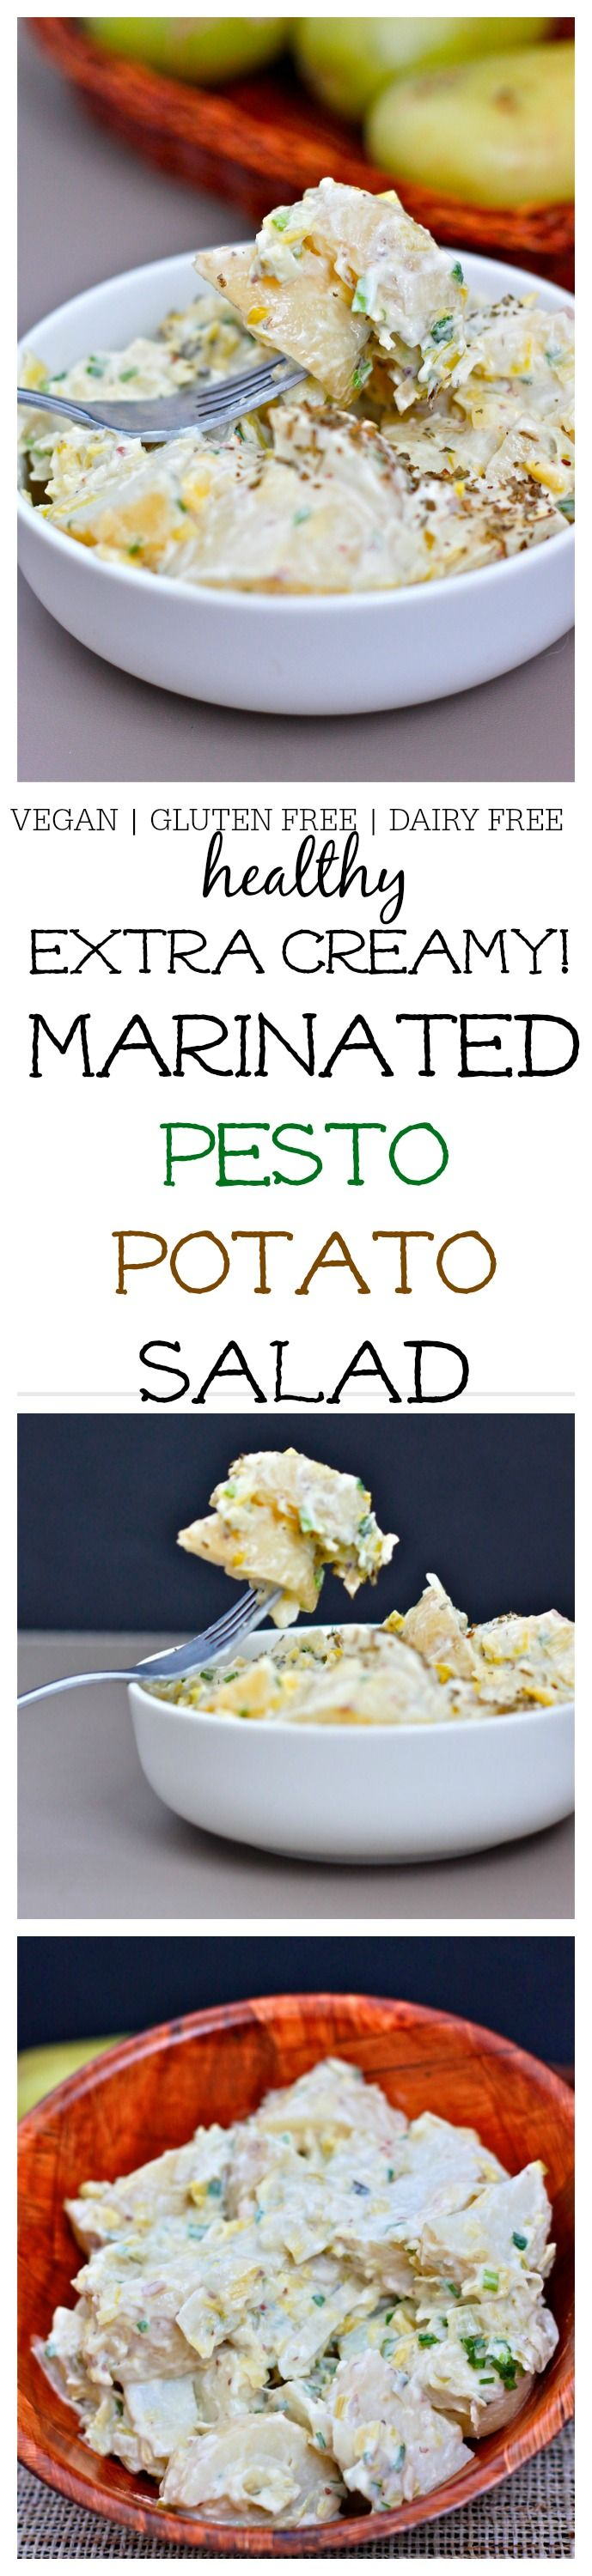 Healthy Marinated Pesto Potato Salad which is Perfect for grilling, picnics or the Summer sides, it's vegan, gluten free and dairy free! @thebigmansworld - thebigmansworld.com